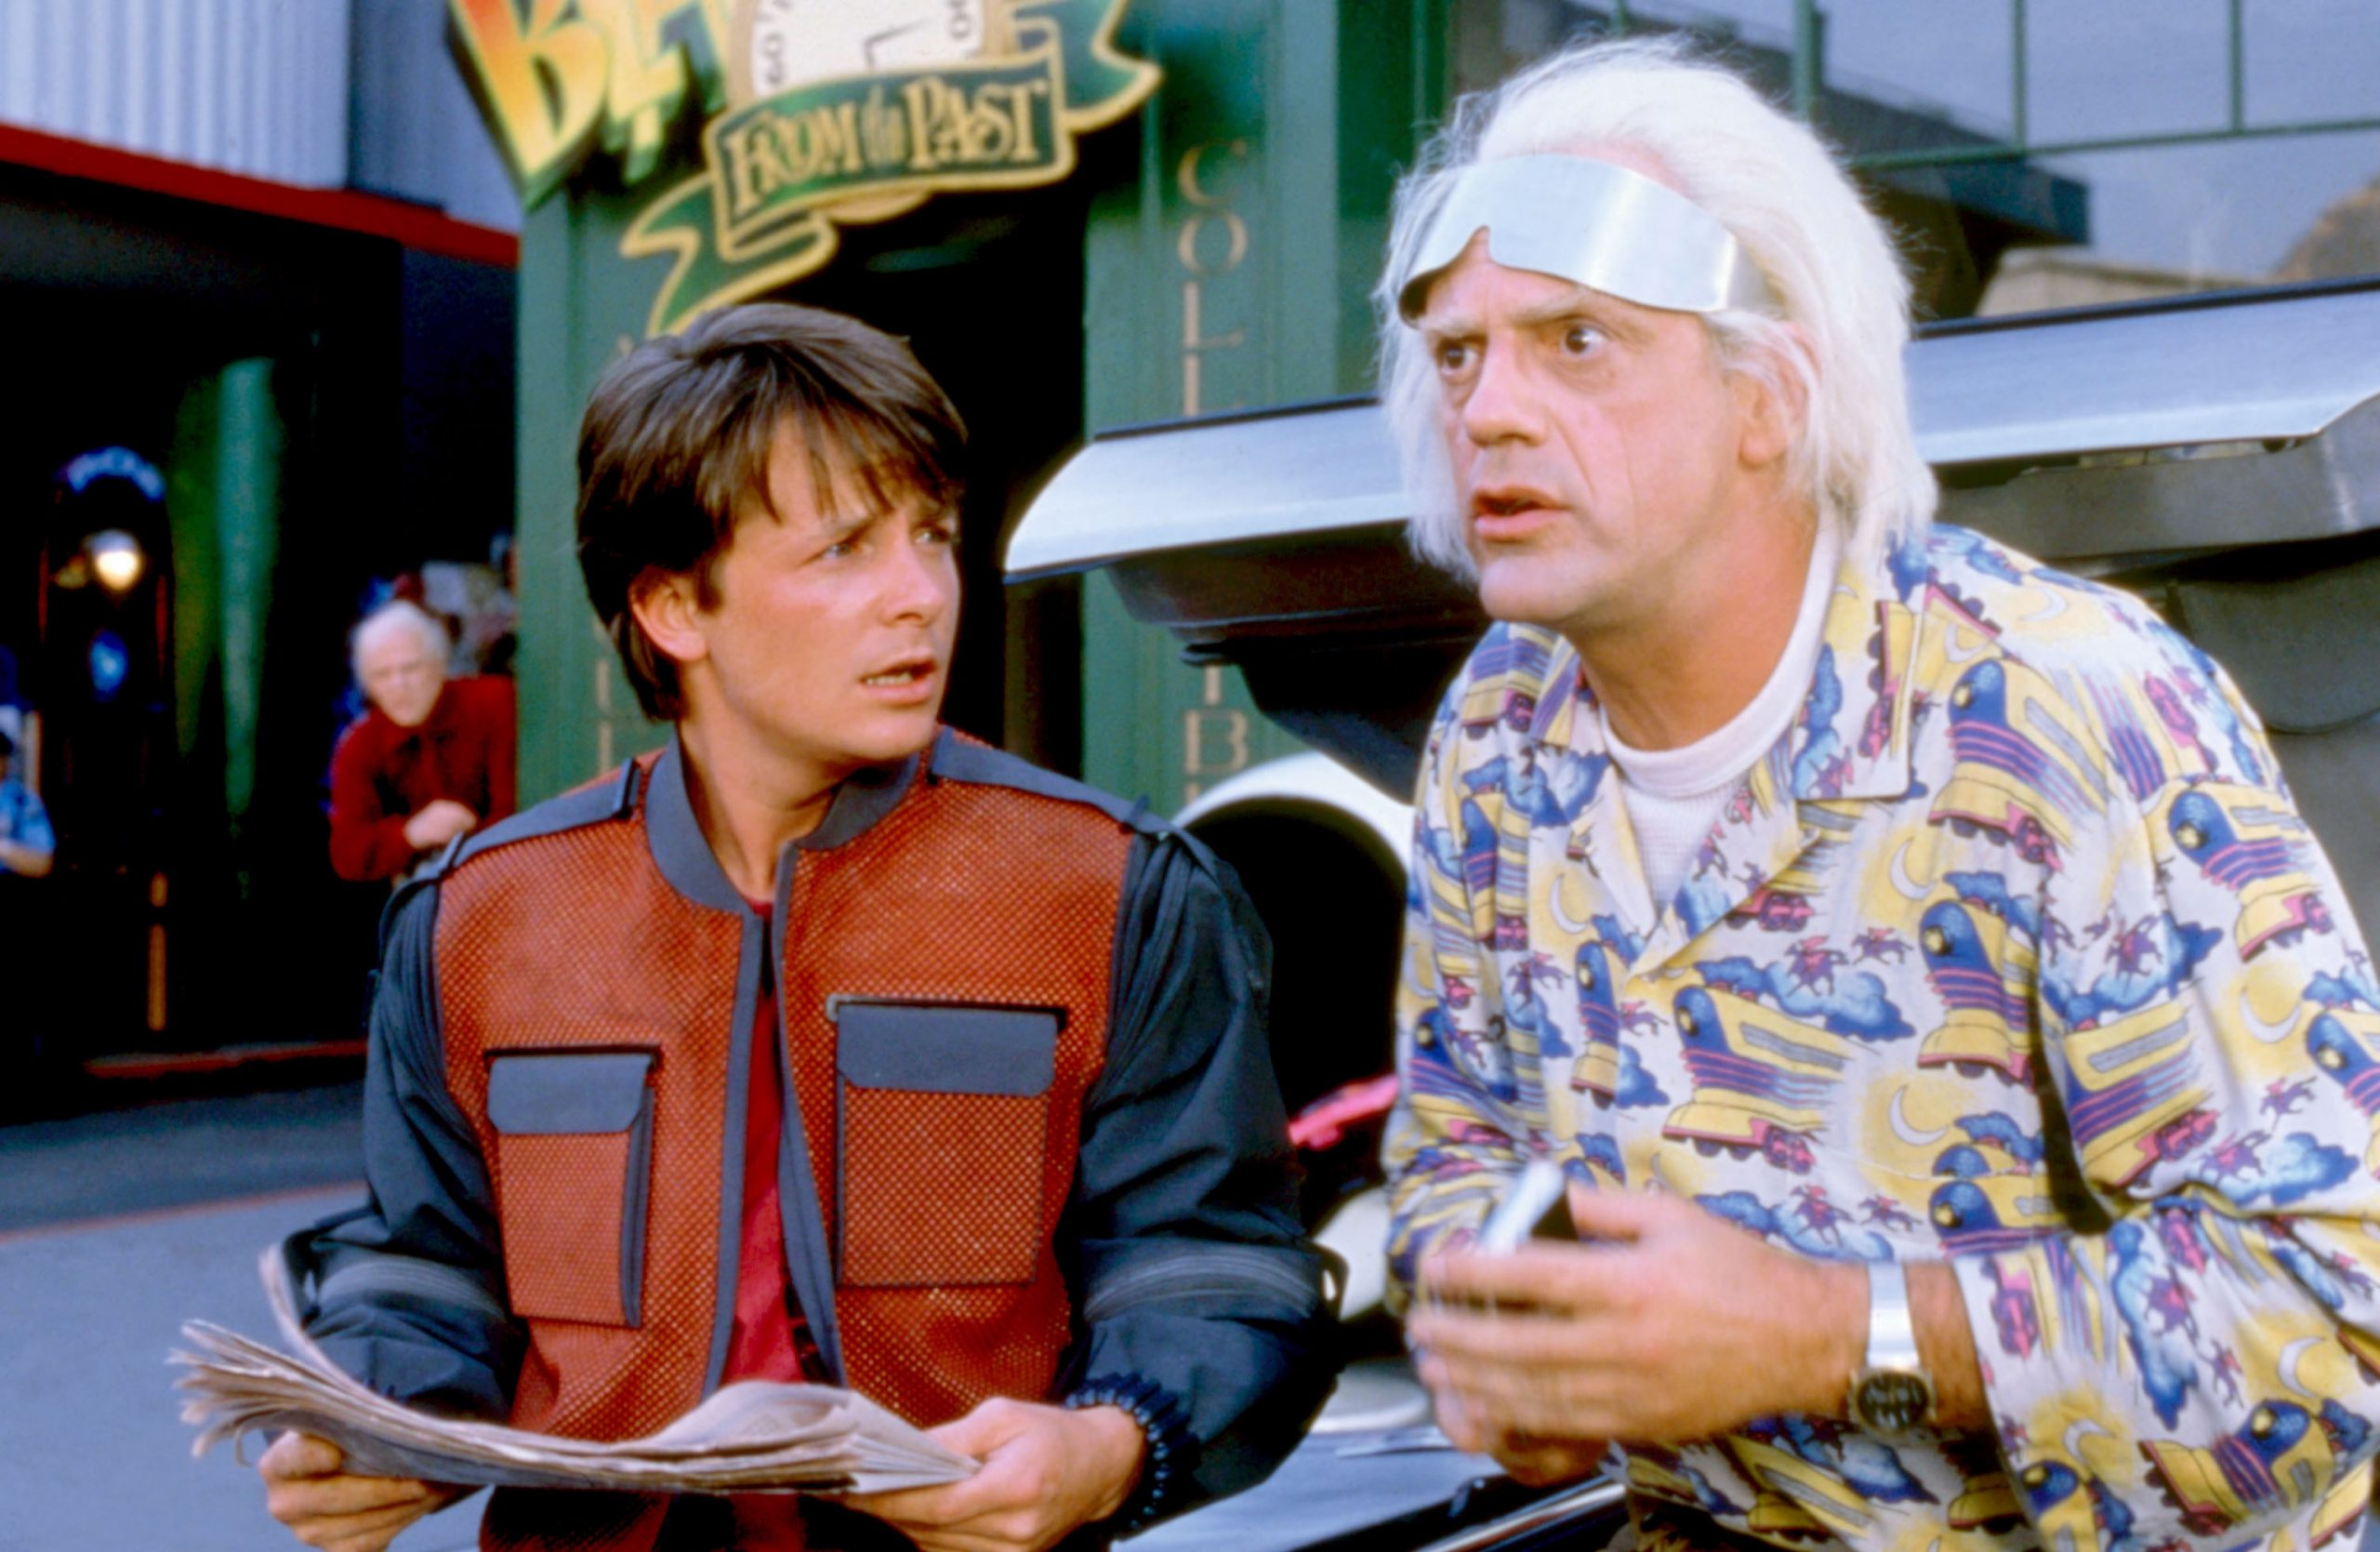 back to the future part 2 scaled 20 Films Set In Futures Past: What They Got Right (And Wrong) About The World We Live In